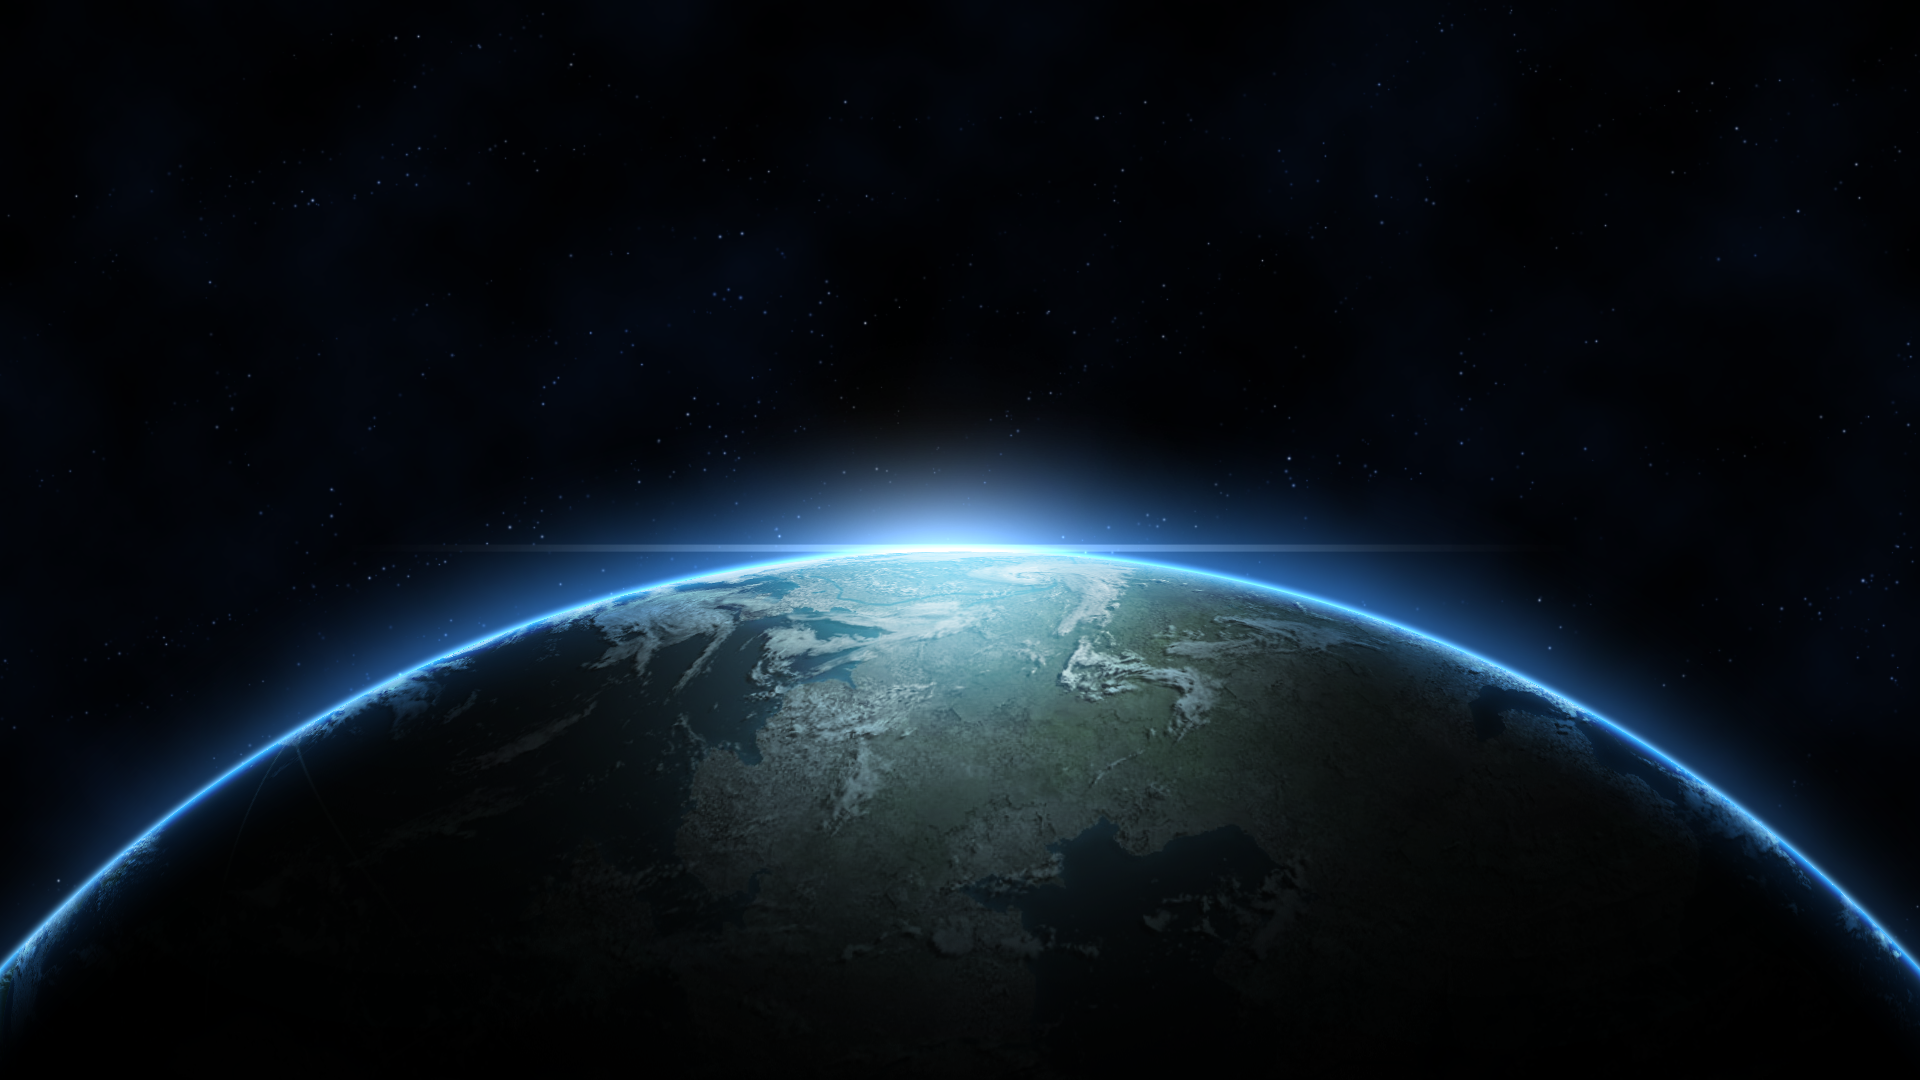 Wallpaper Hd 1080p Planet Earth Pictures Space Wallpaper